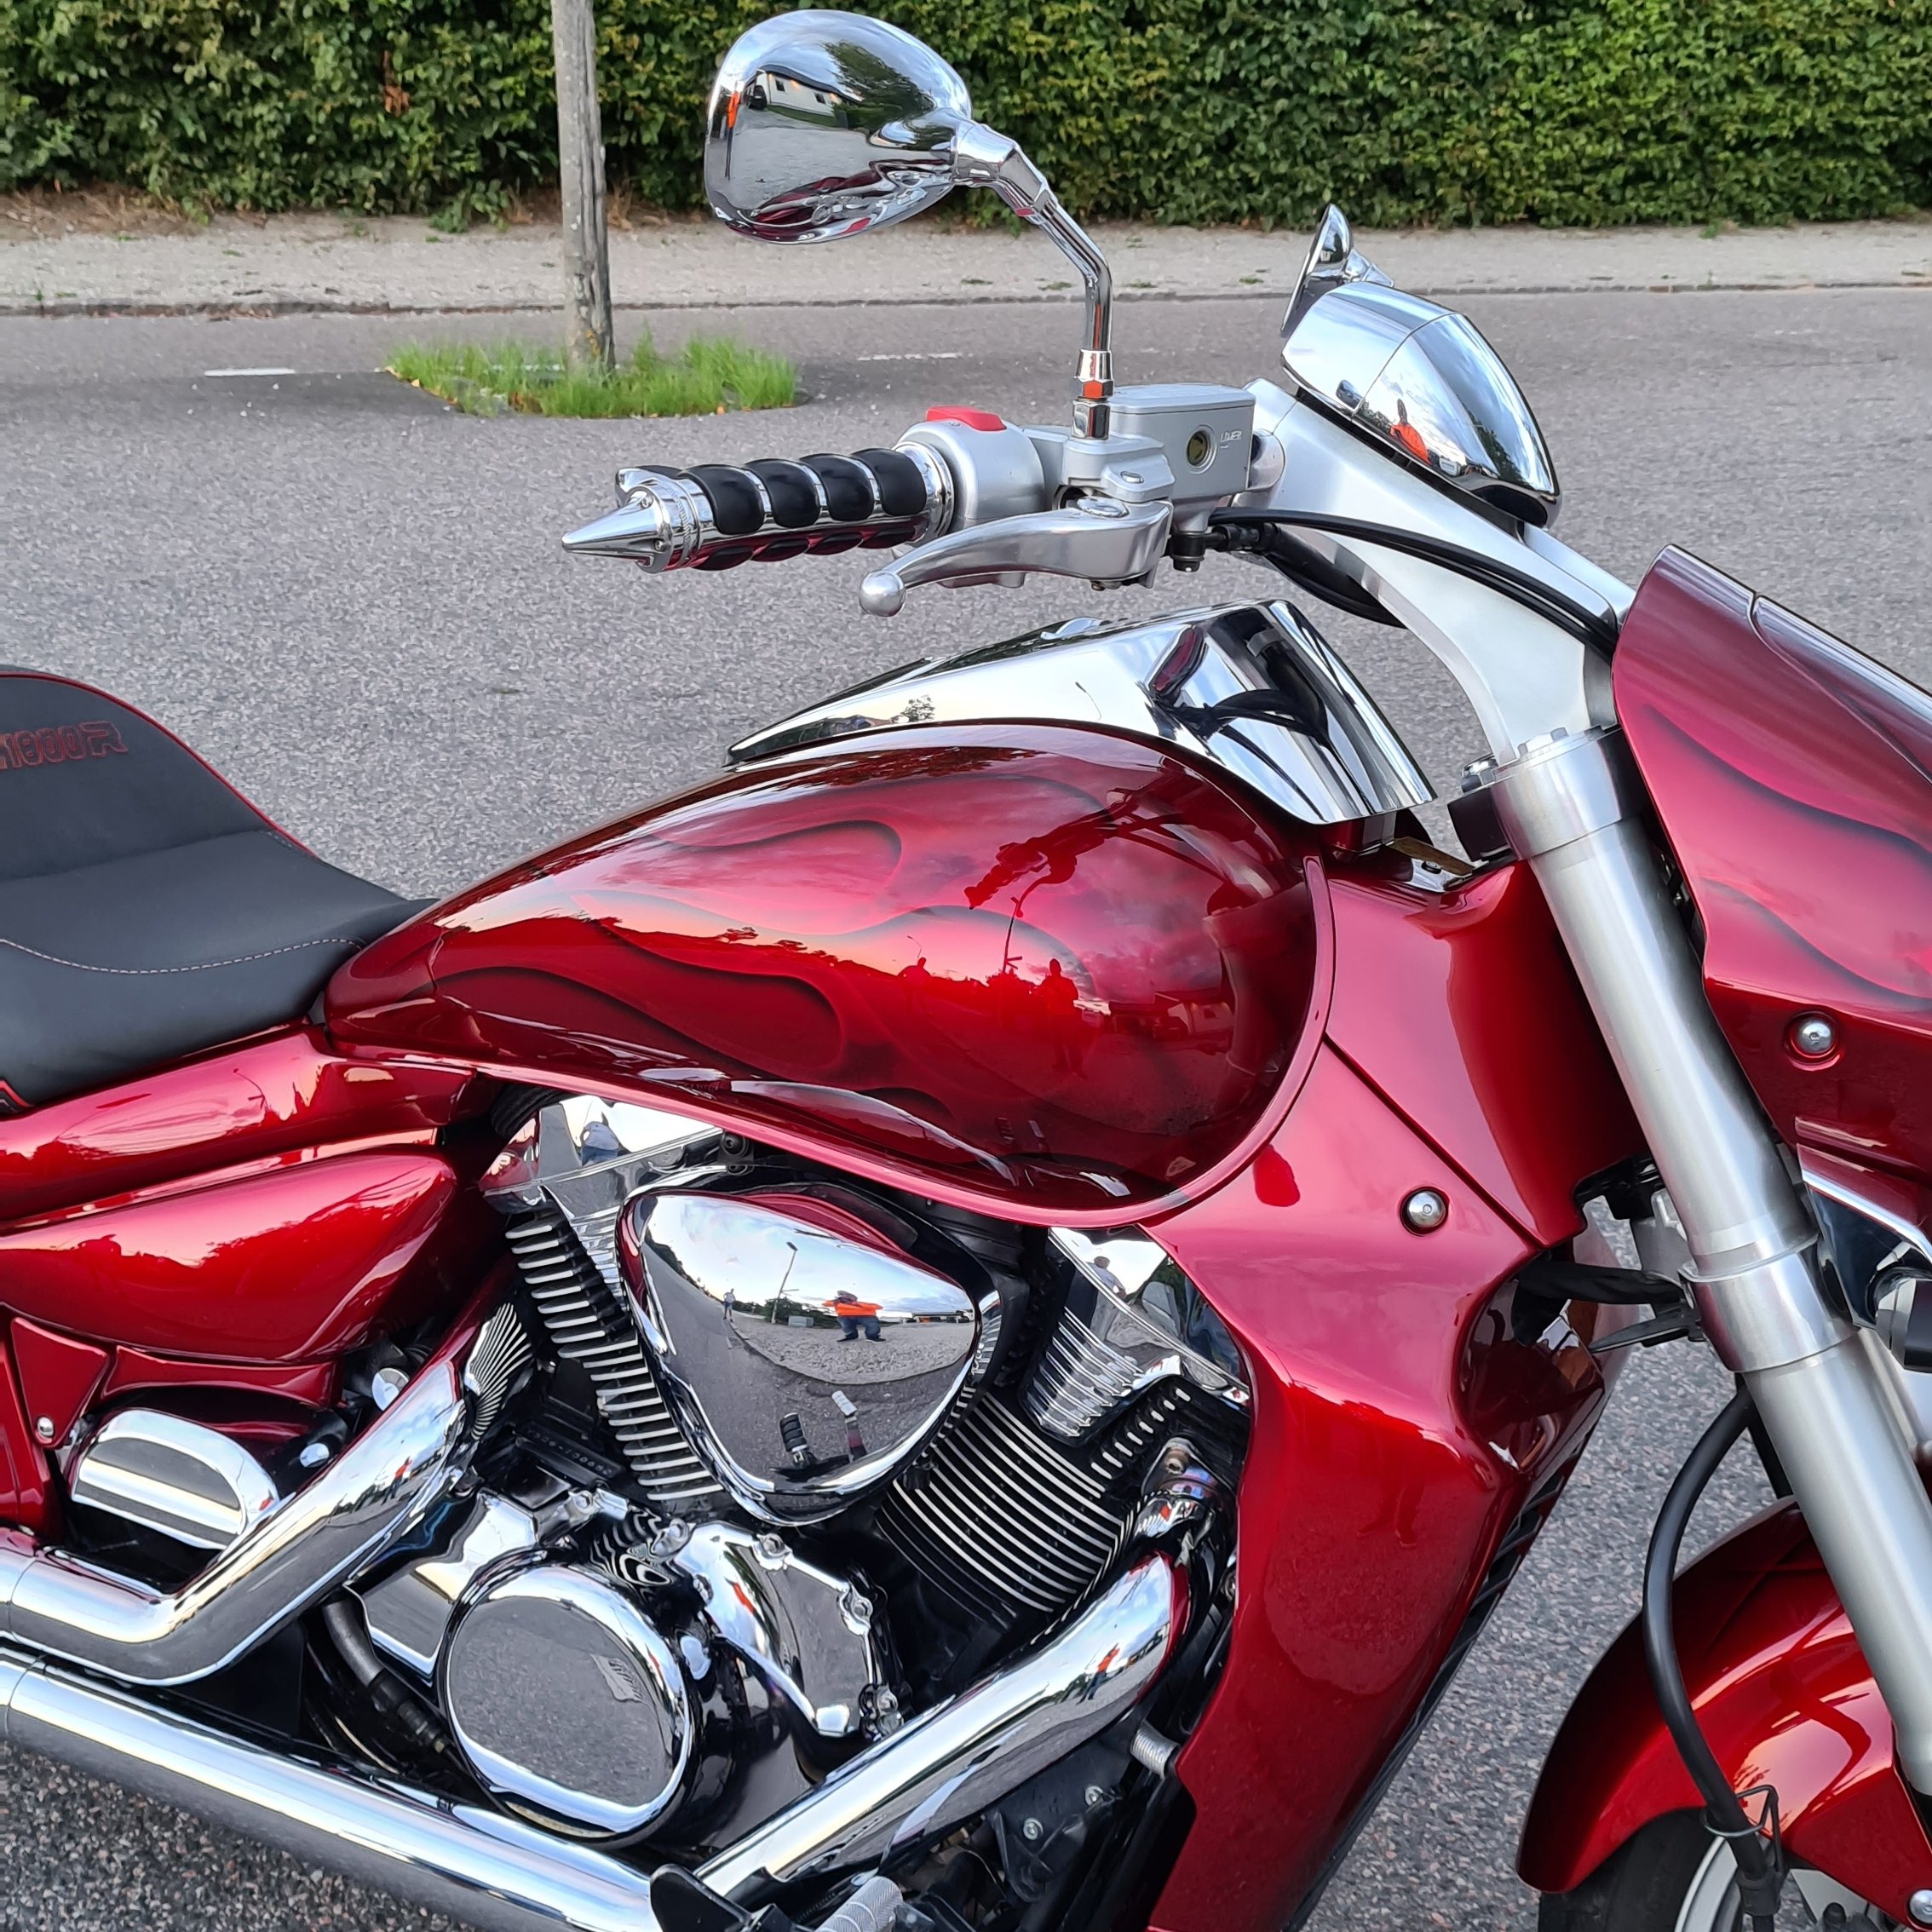 Suzuki Intruder m1800r red candy ghost classic flames 9